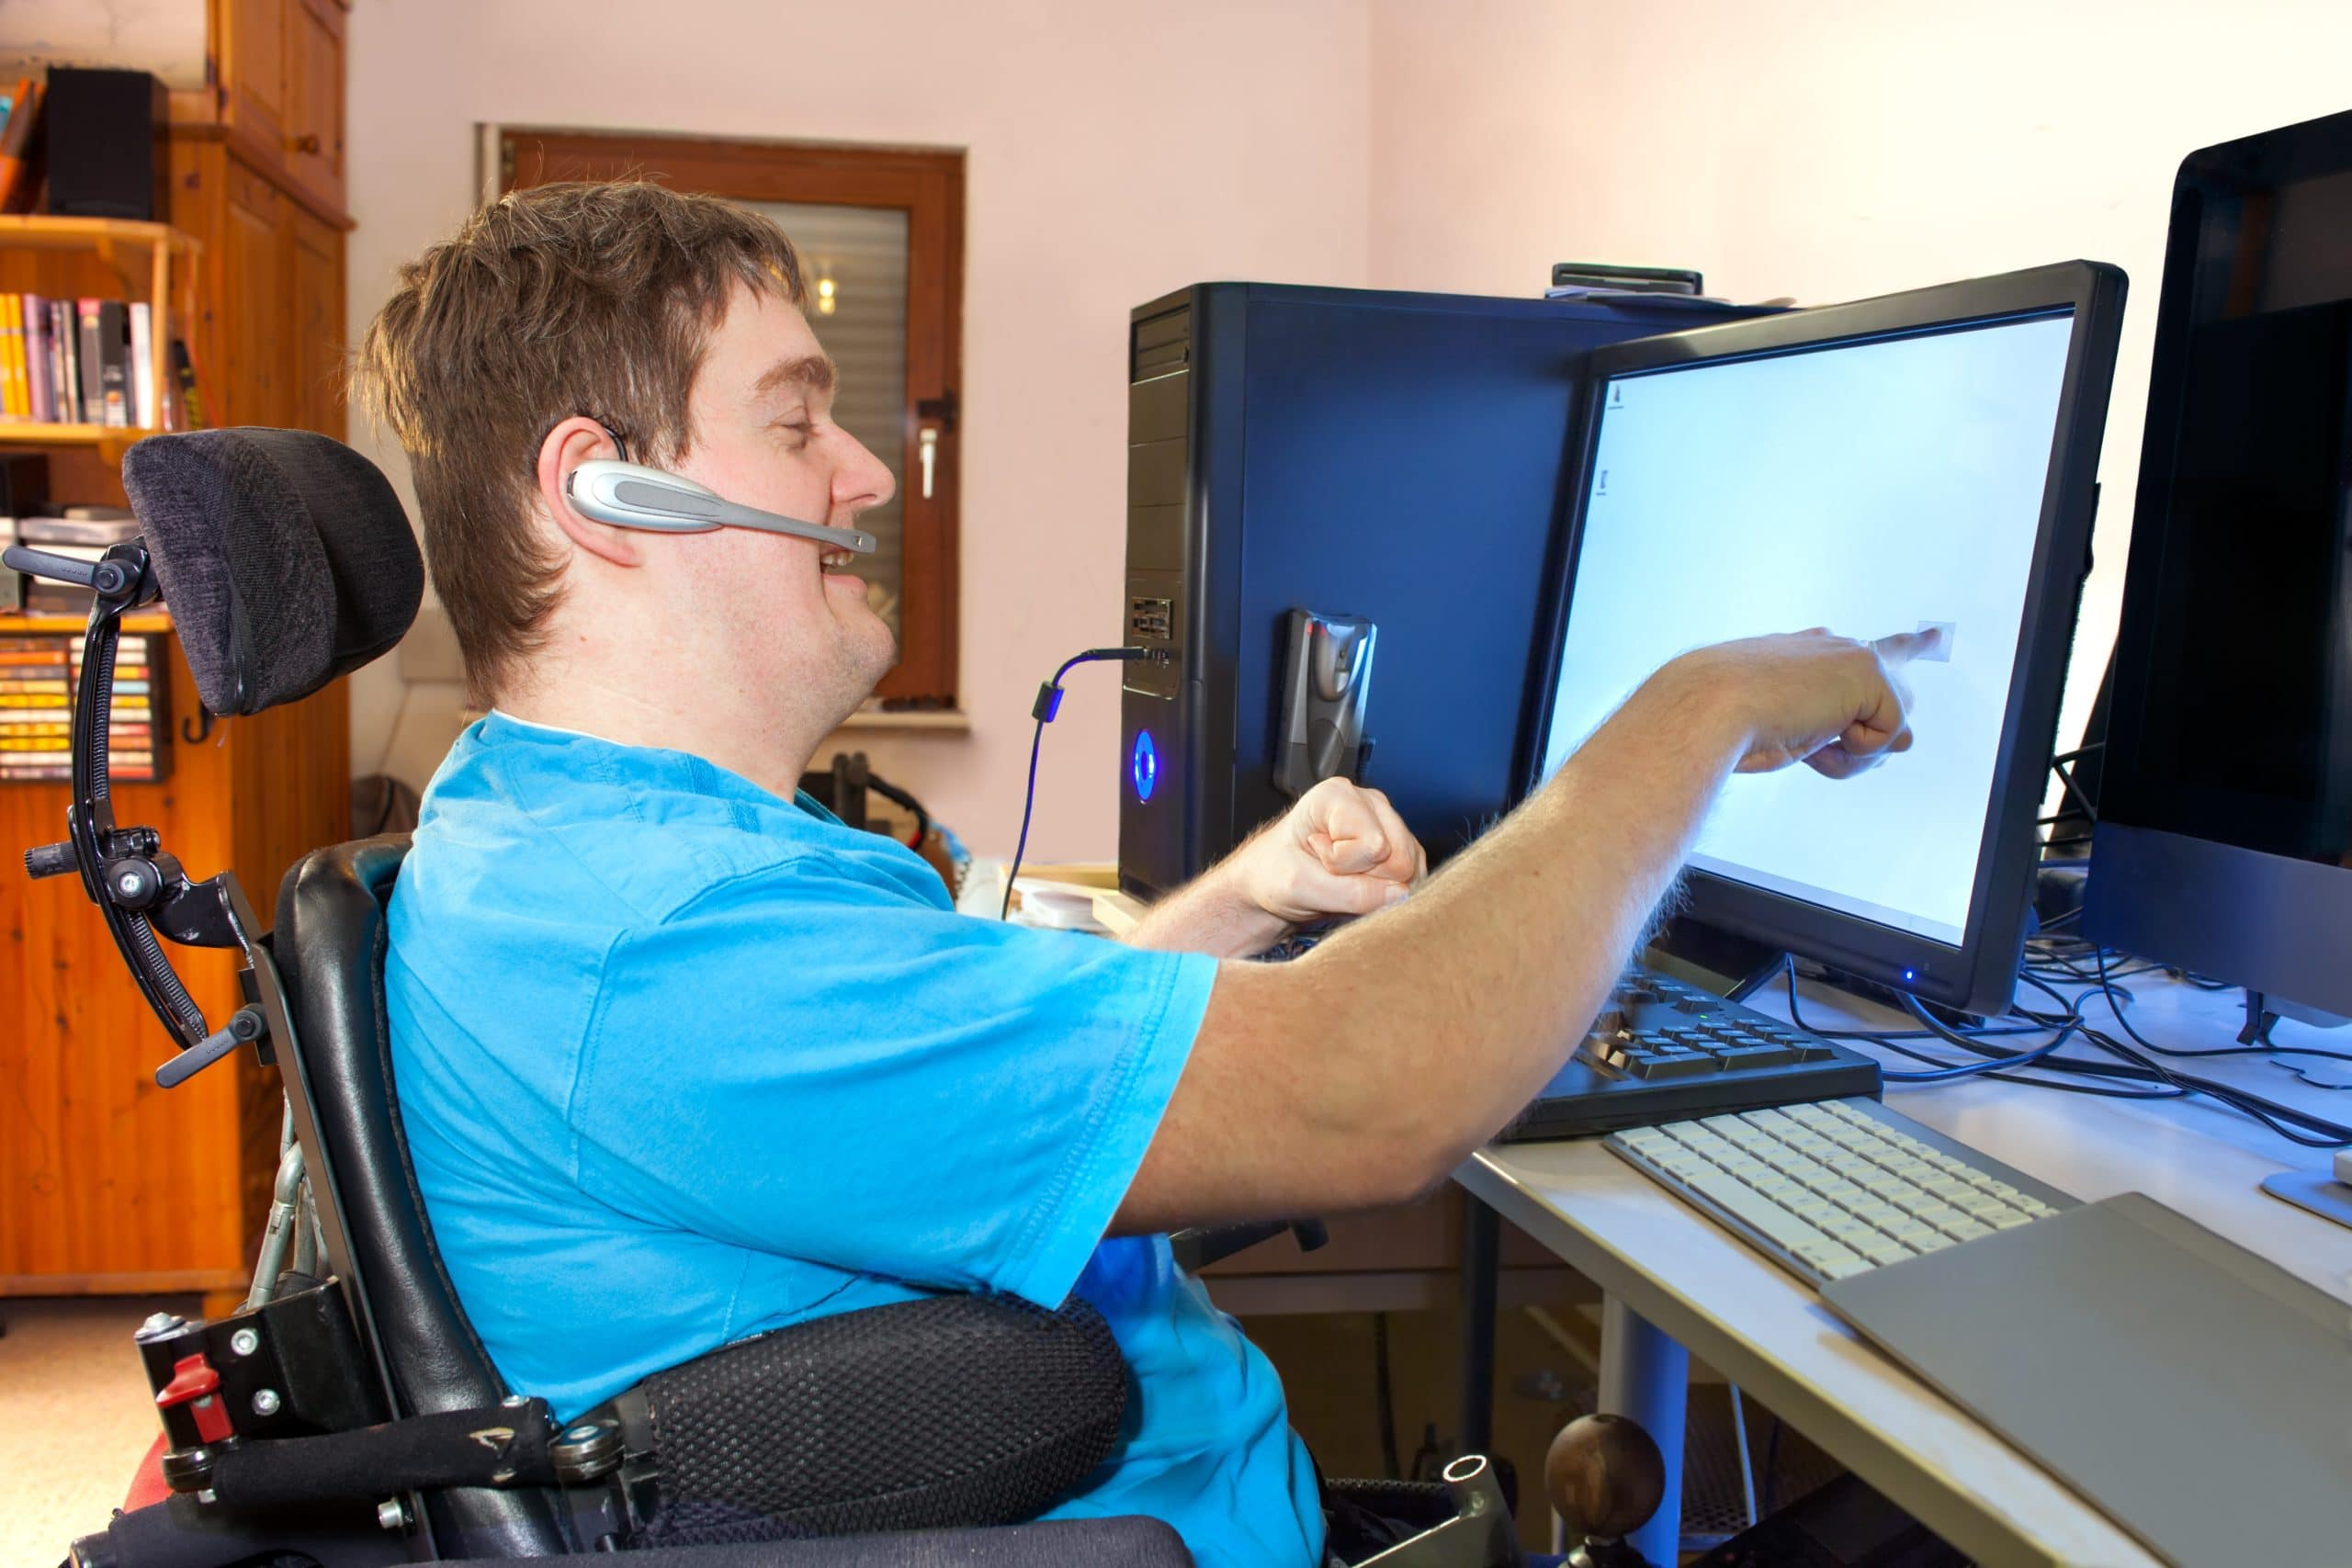 Man In Wheelchair Working on a Computer